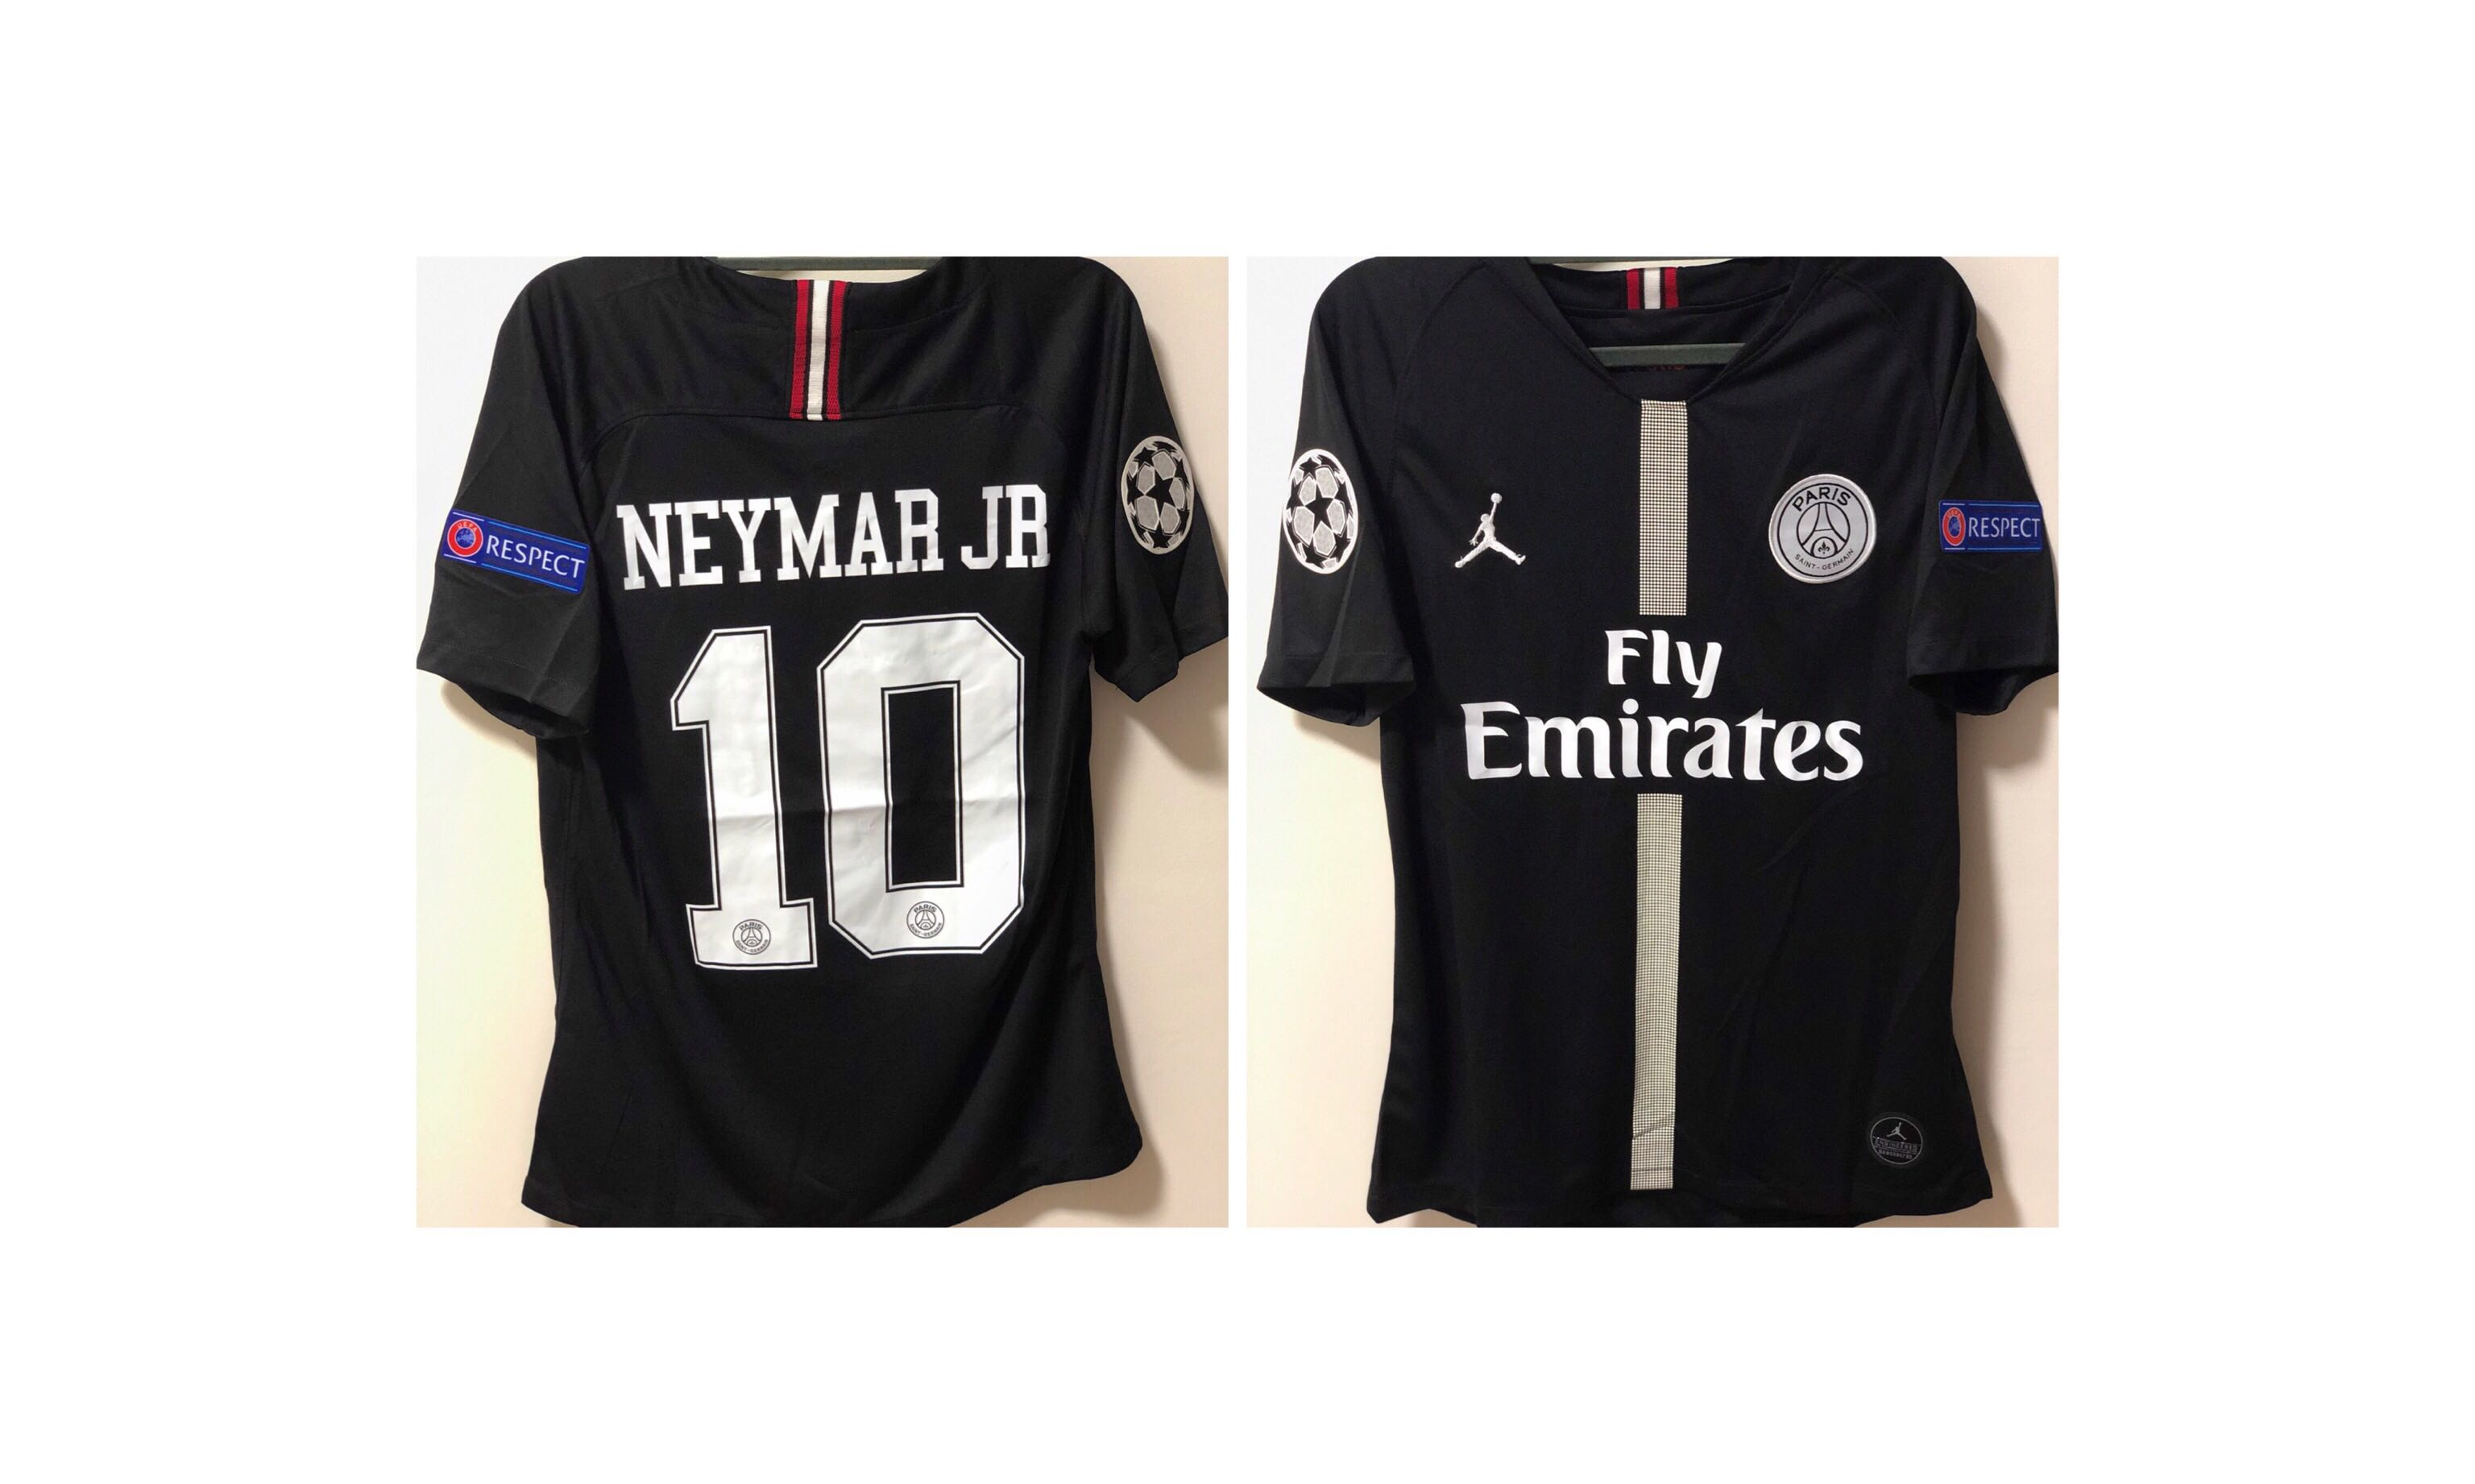 58e74bcb4f3 18/19 PSG Third Jordan Black (NEYMAR JR), Sports, Sports Apparel on  Carousell